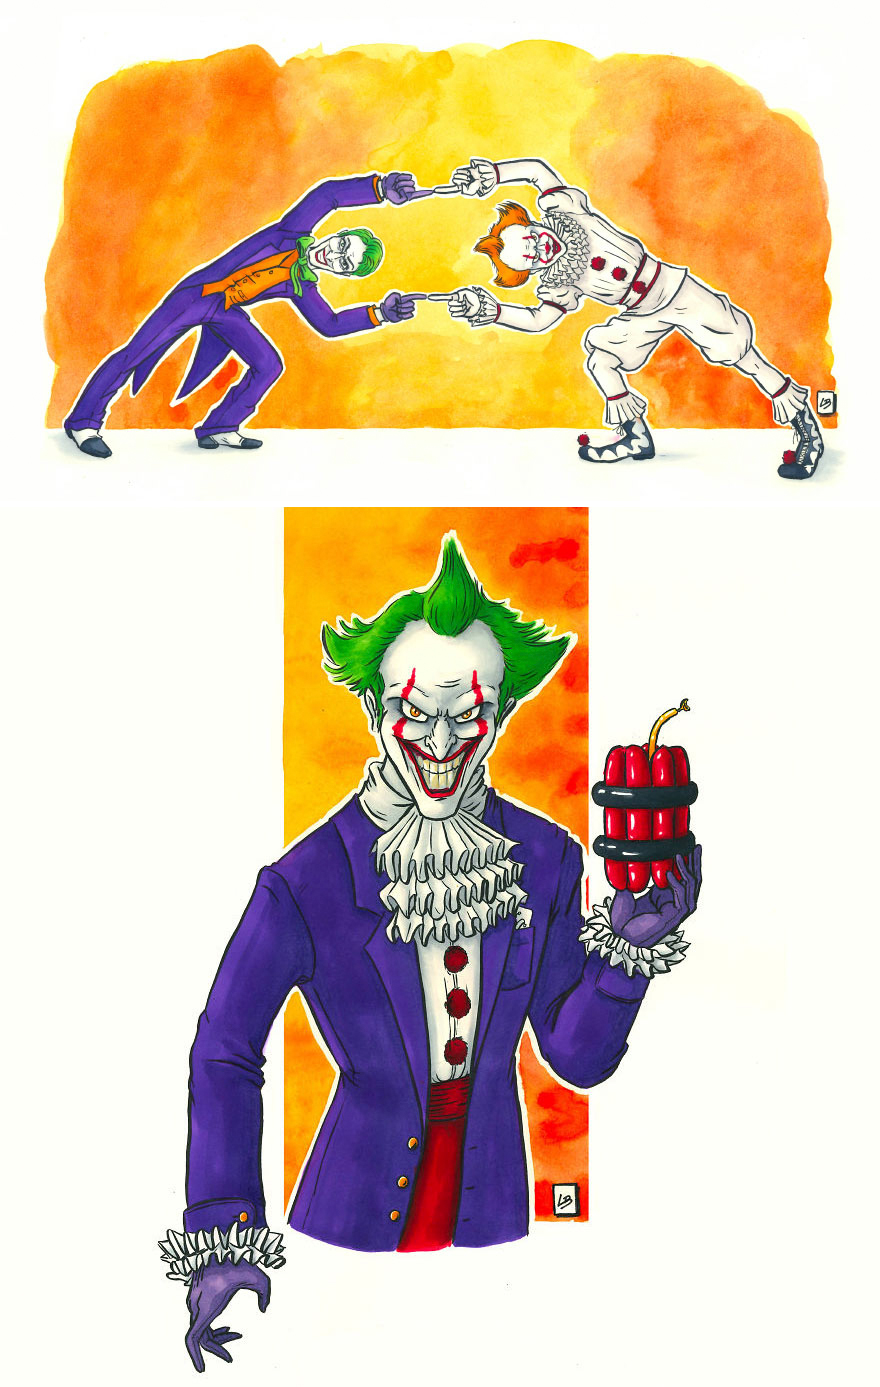 The Joker x Pennywise